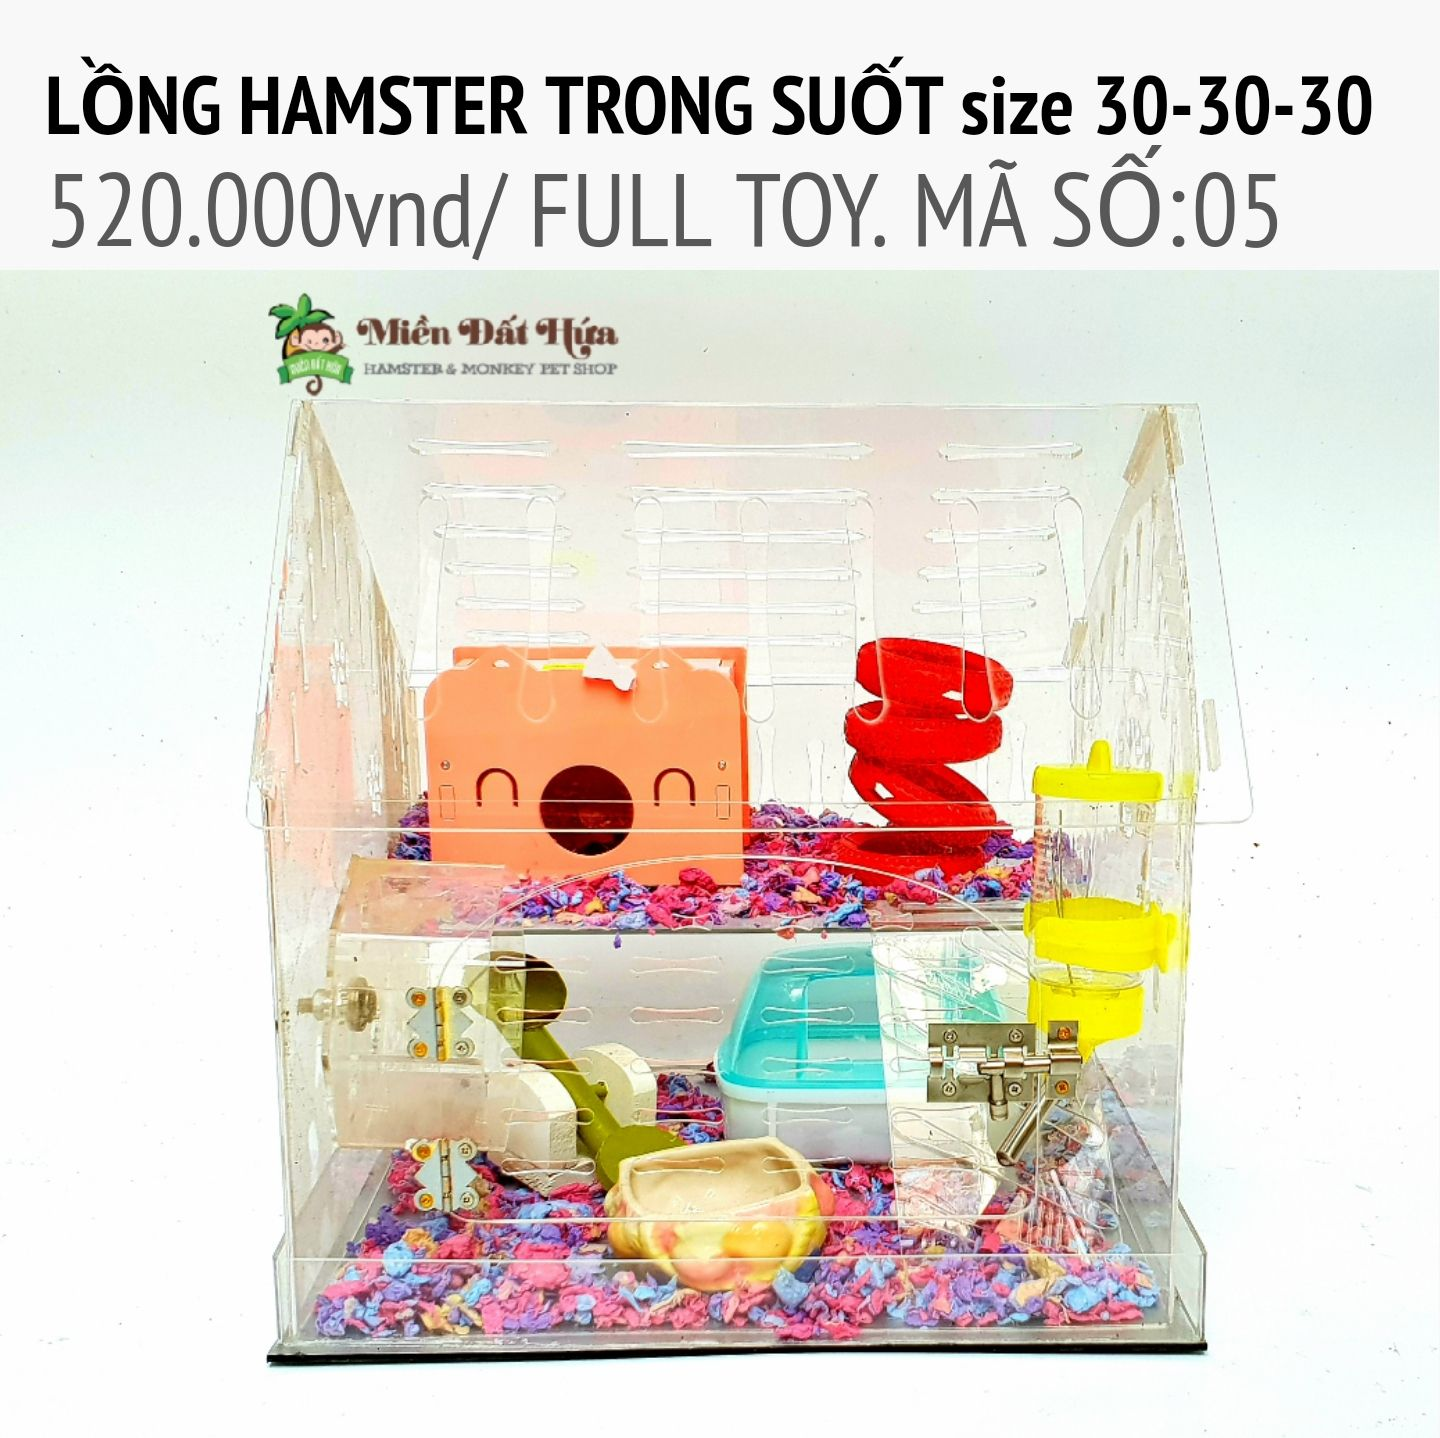 LỒNG hamster trong suốt size 30-30-30 ms05